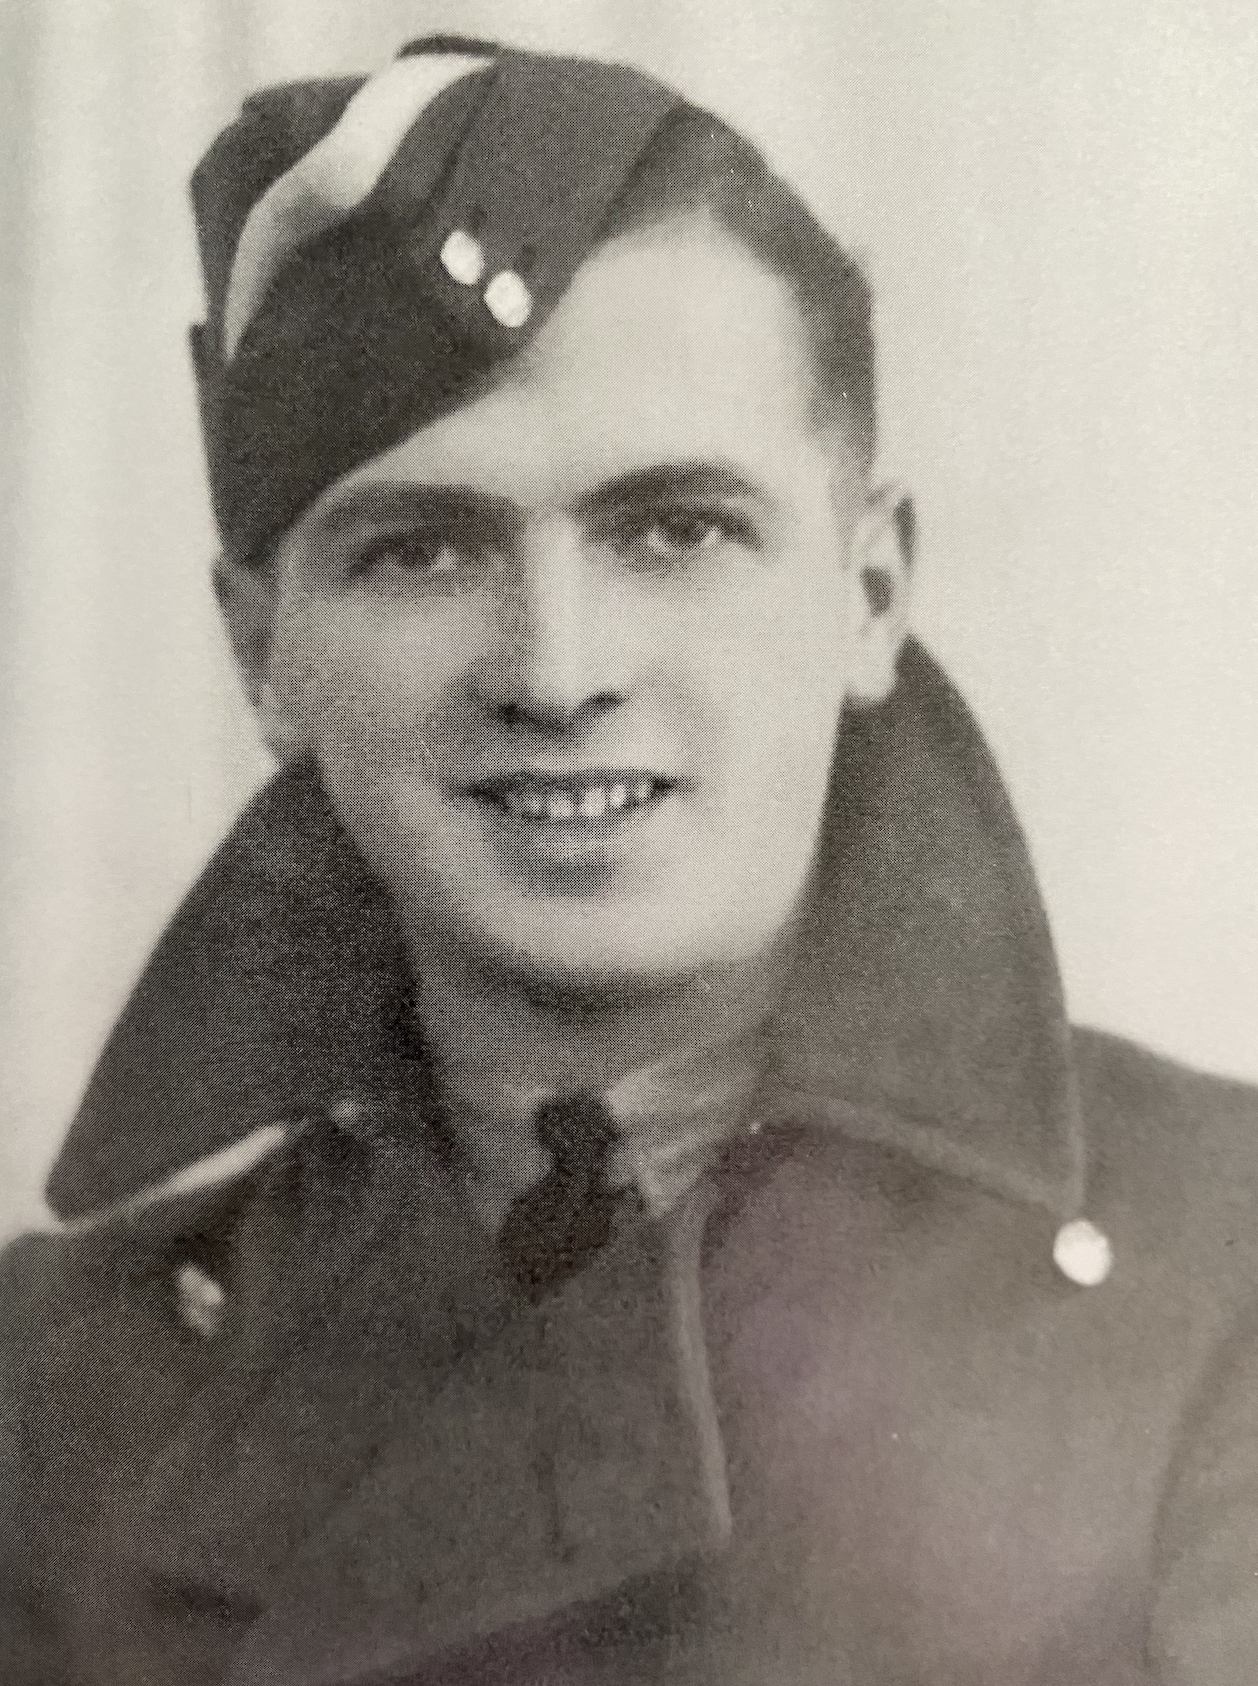 Jack as an Aircrew Trainee, 1942